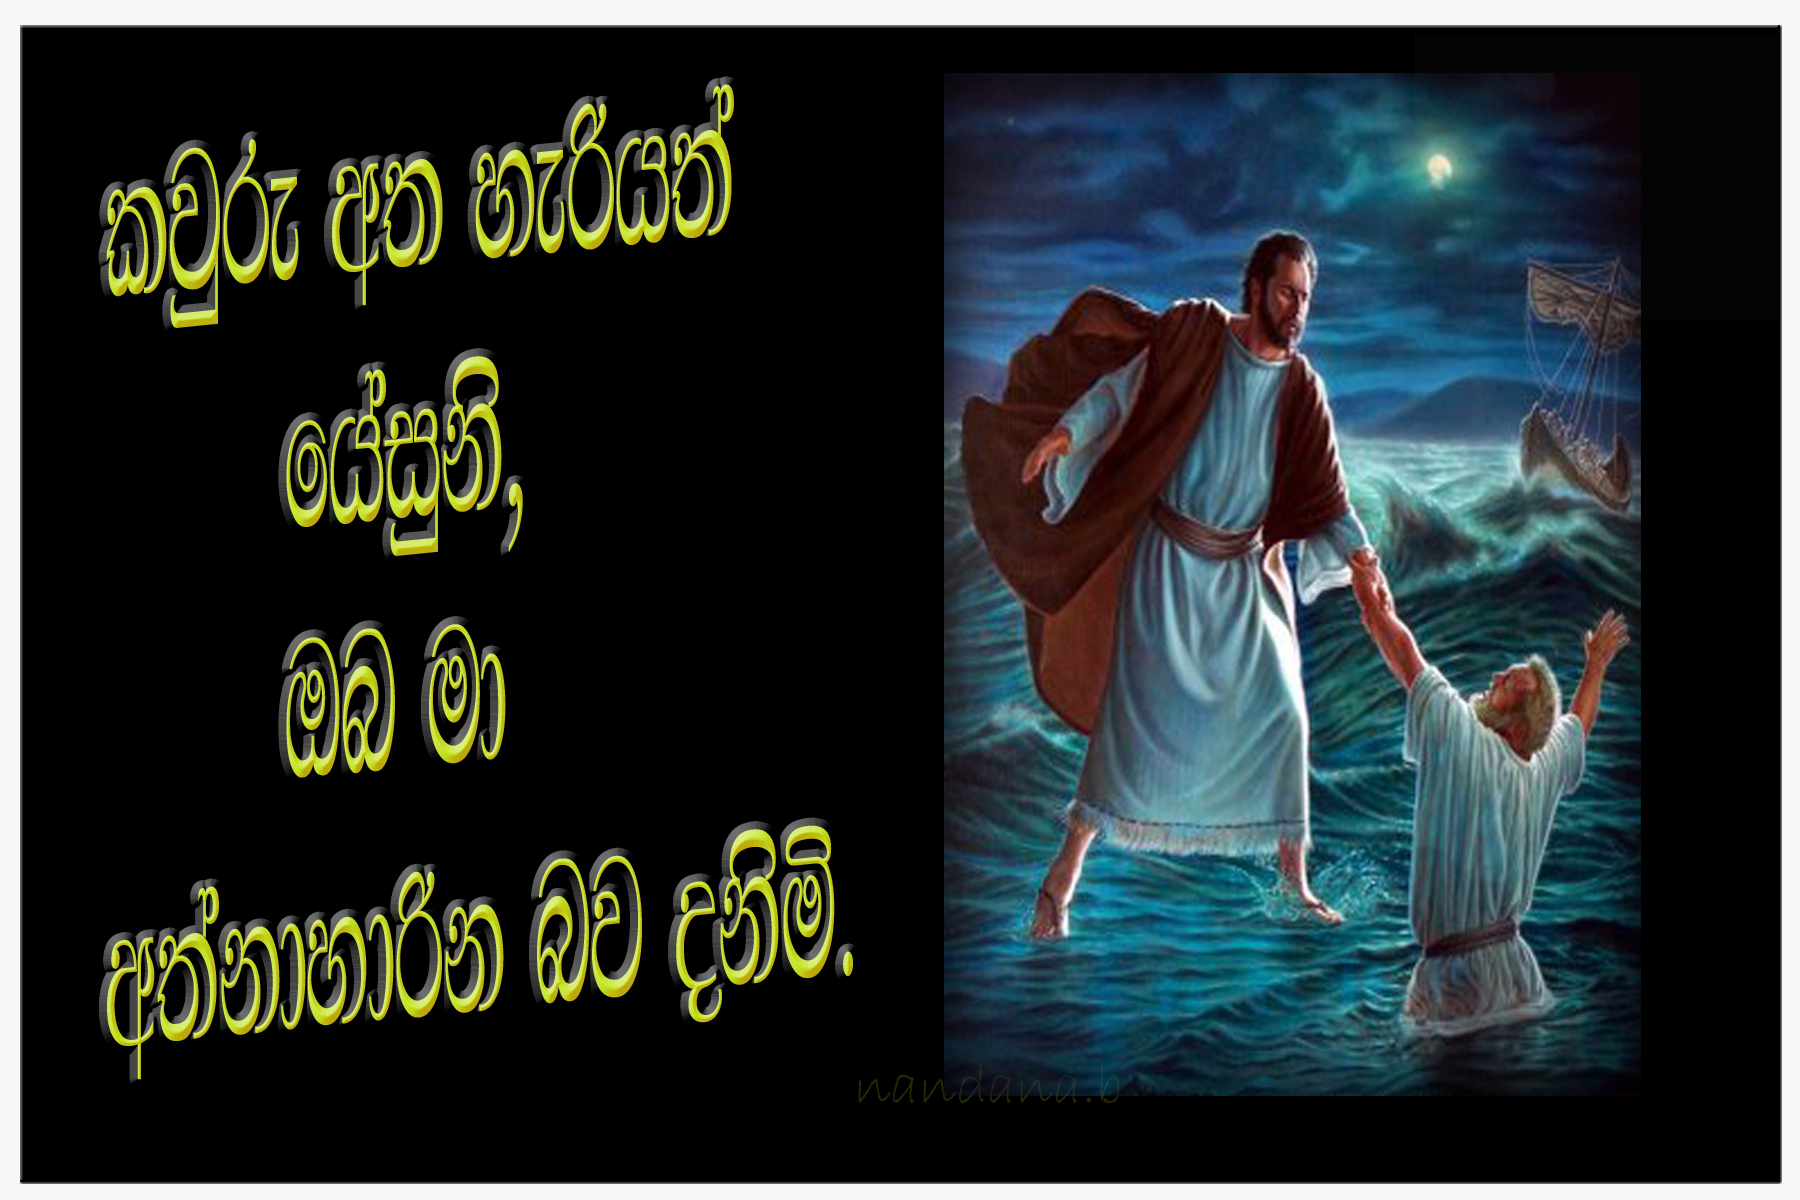 Cellphone Wallpaper Hd Quote Download Sinhala Bible Words Wallpaper Gallery